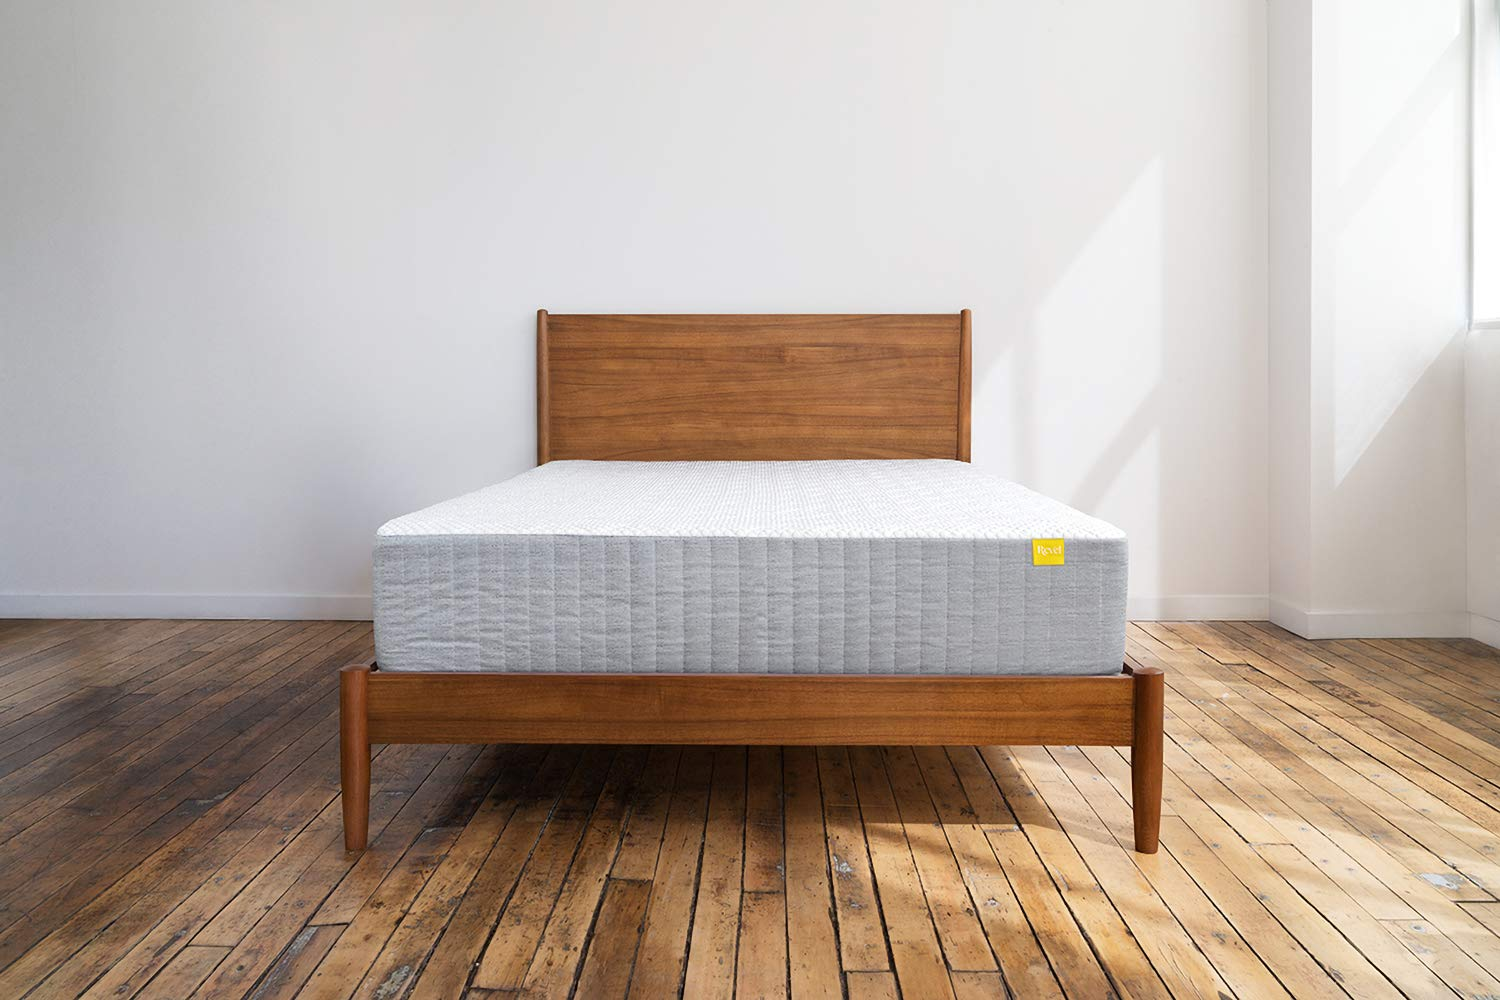 Revel Custom Cool Mattress (King), Featuring All Climate Cooling Gel Memory Foam, Made in the USA with a 10-Year Warranty, Amazon Exclusive by Revel